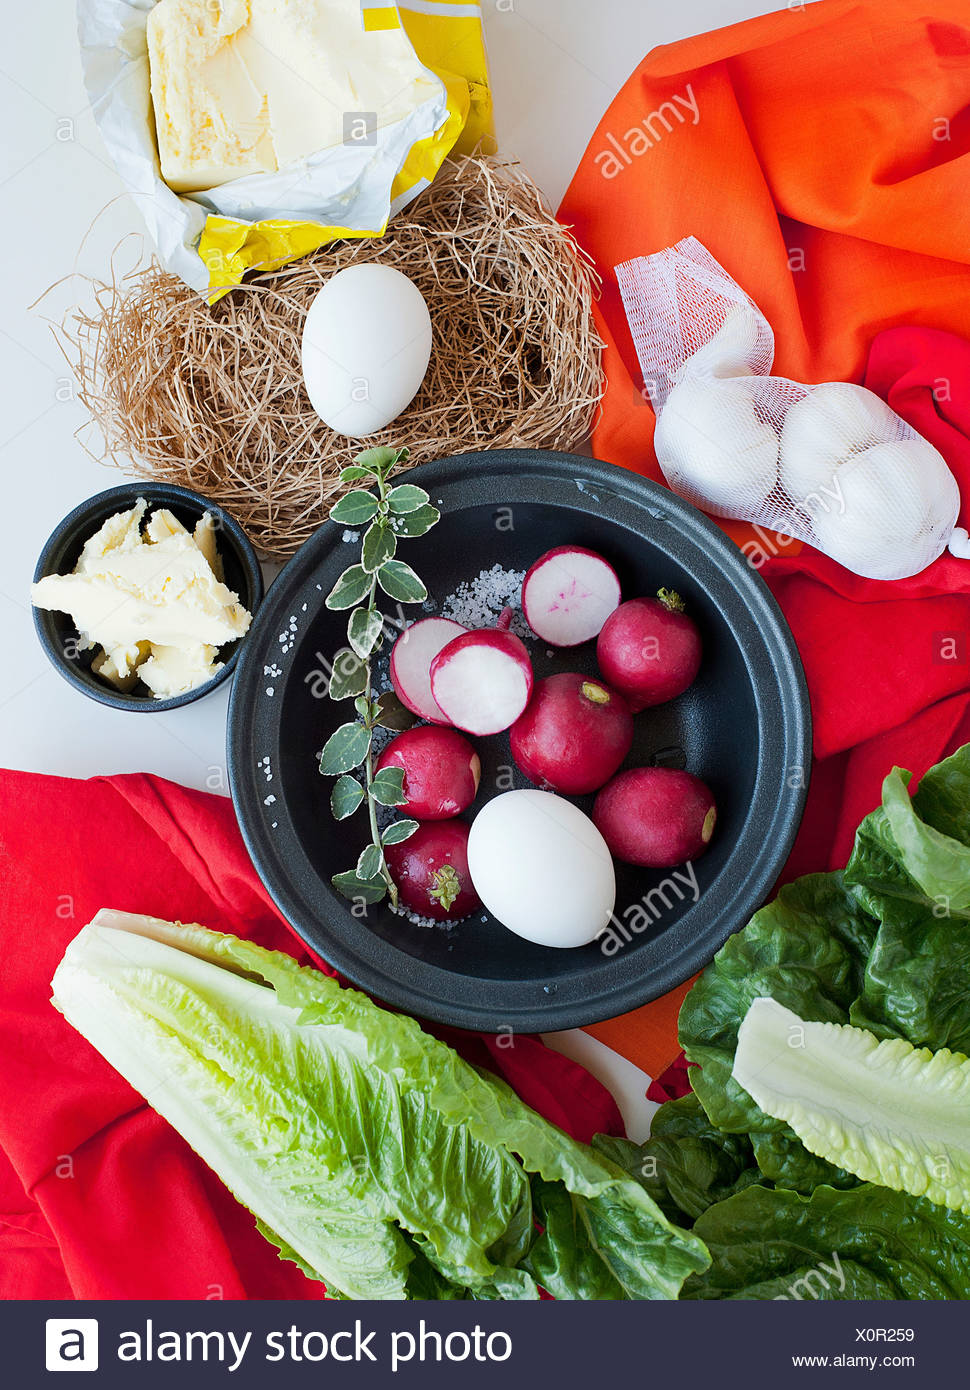 Food still life with radish, eggs and salad leaves - Stock Image